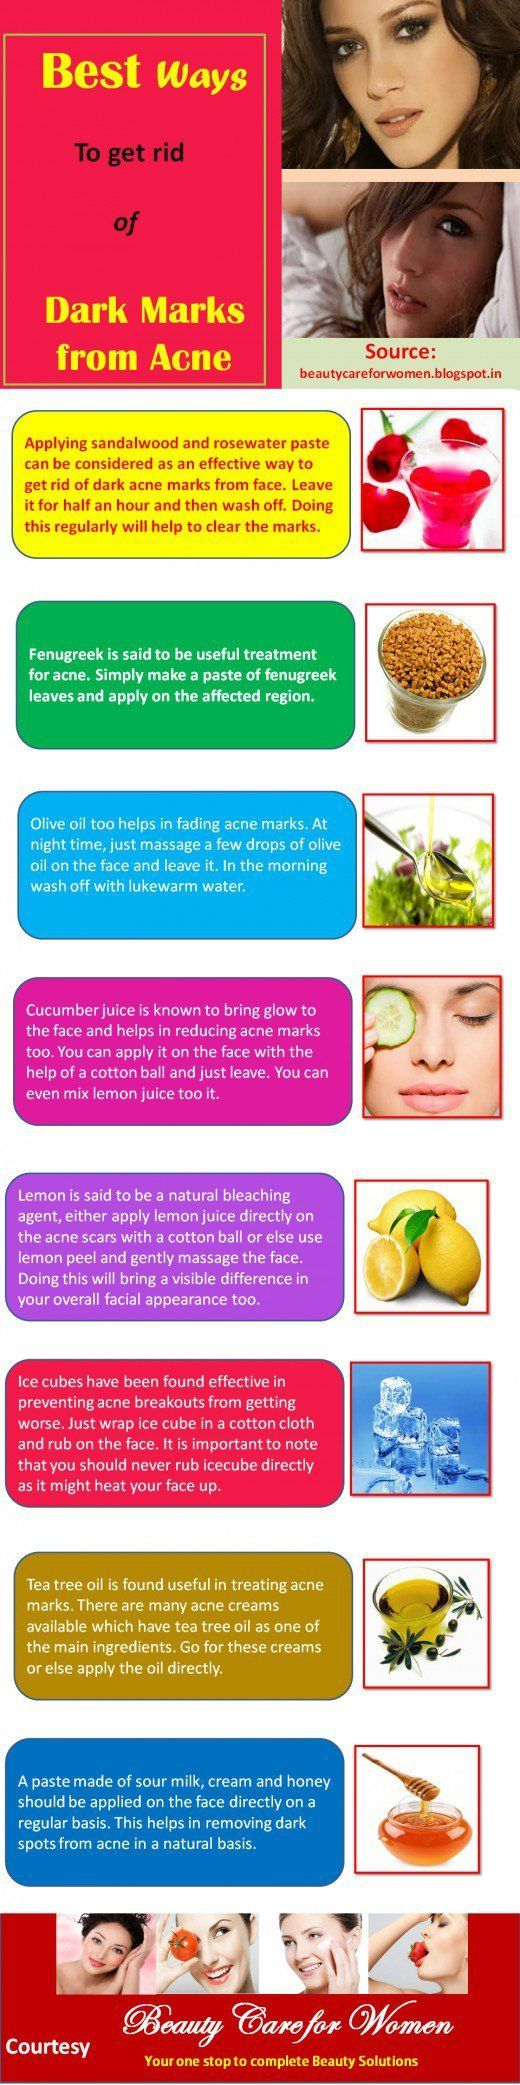 how to get rid of dark spots from acne, follow natural home remedies for dark marks and acne scars, know the face masks for dark spots from acne and how you can prevent acne naturally #naturalskincare #skincareproducts #Australianskincare #AqiskinCare #australianmade